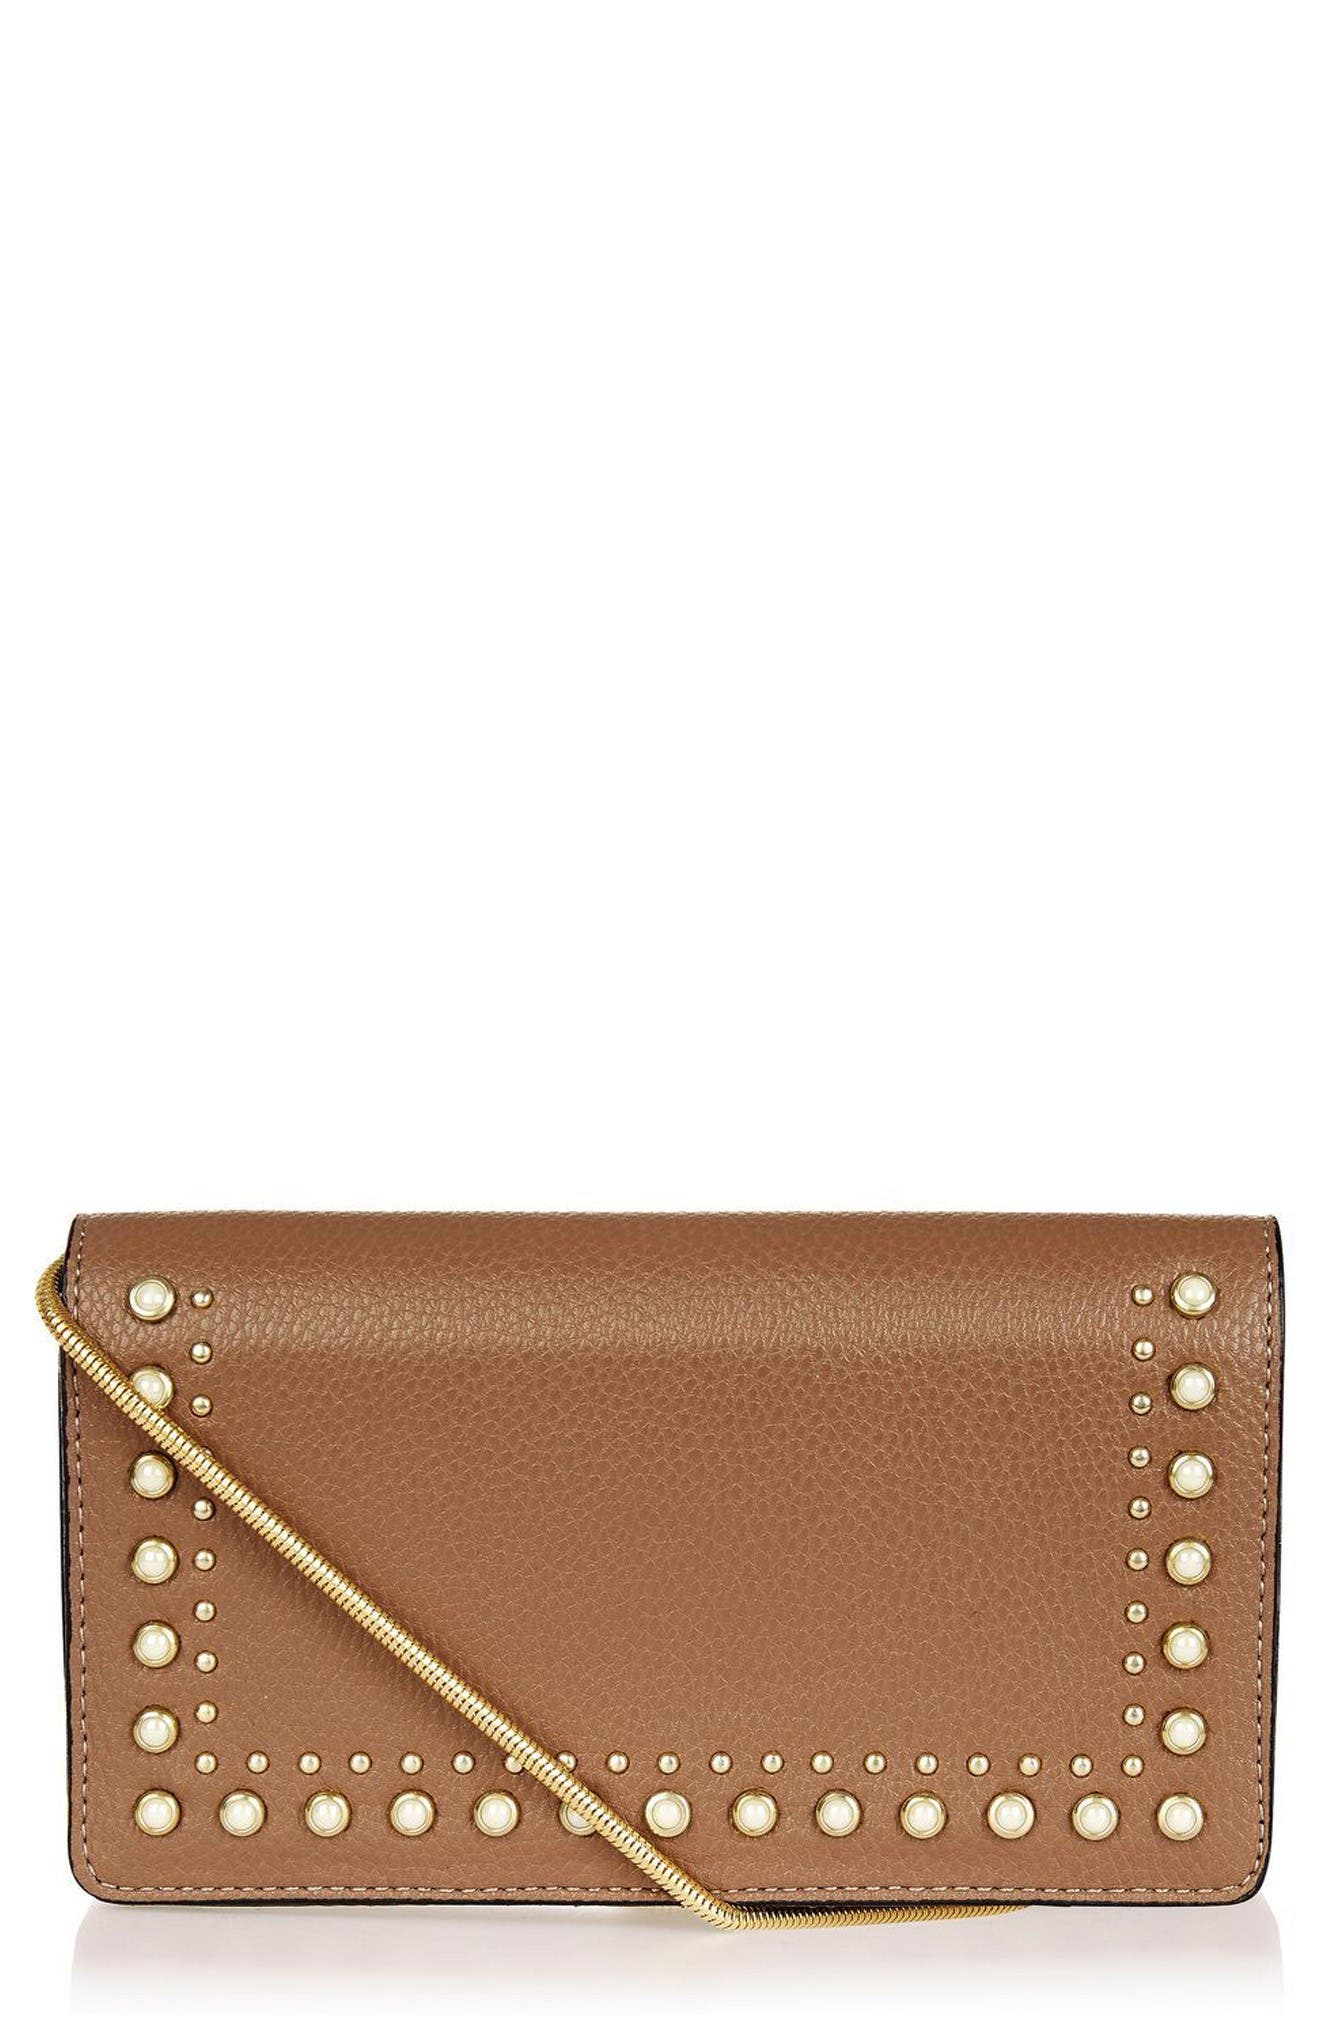 Alternate Image 1 Selected - Topshop Orla Stud Faux Leather Crossbody